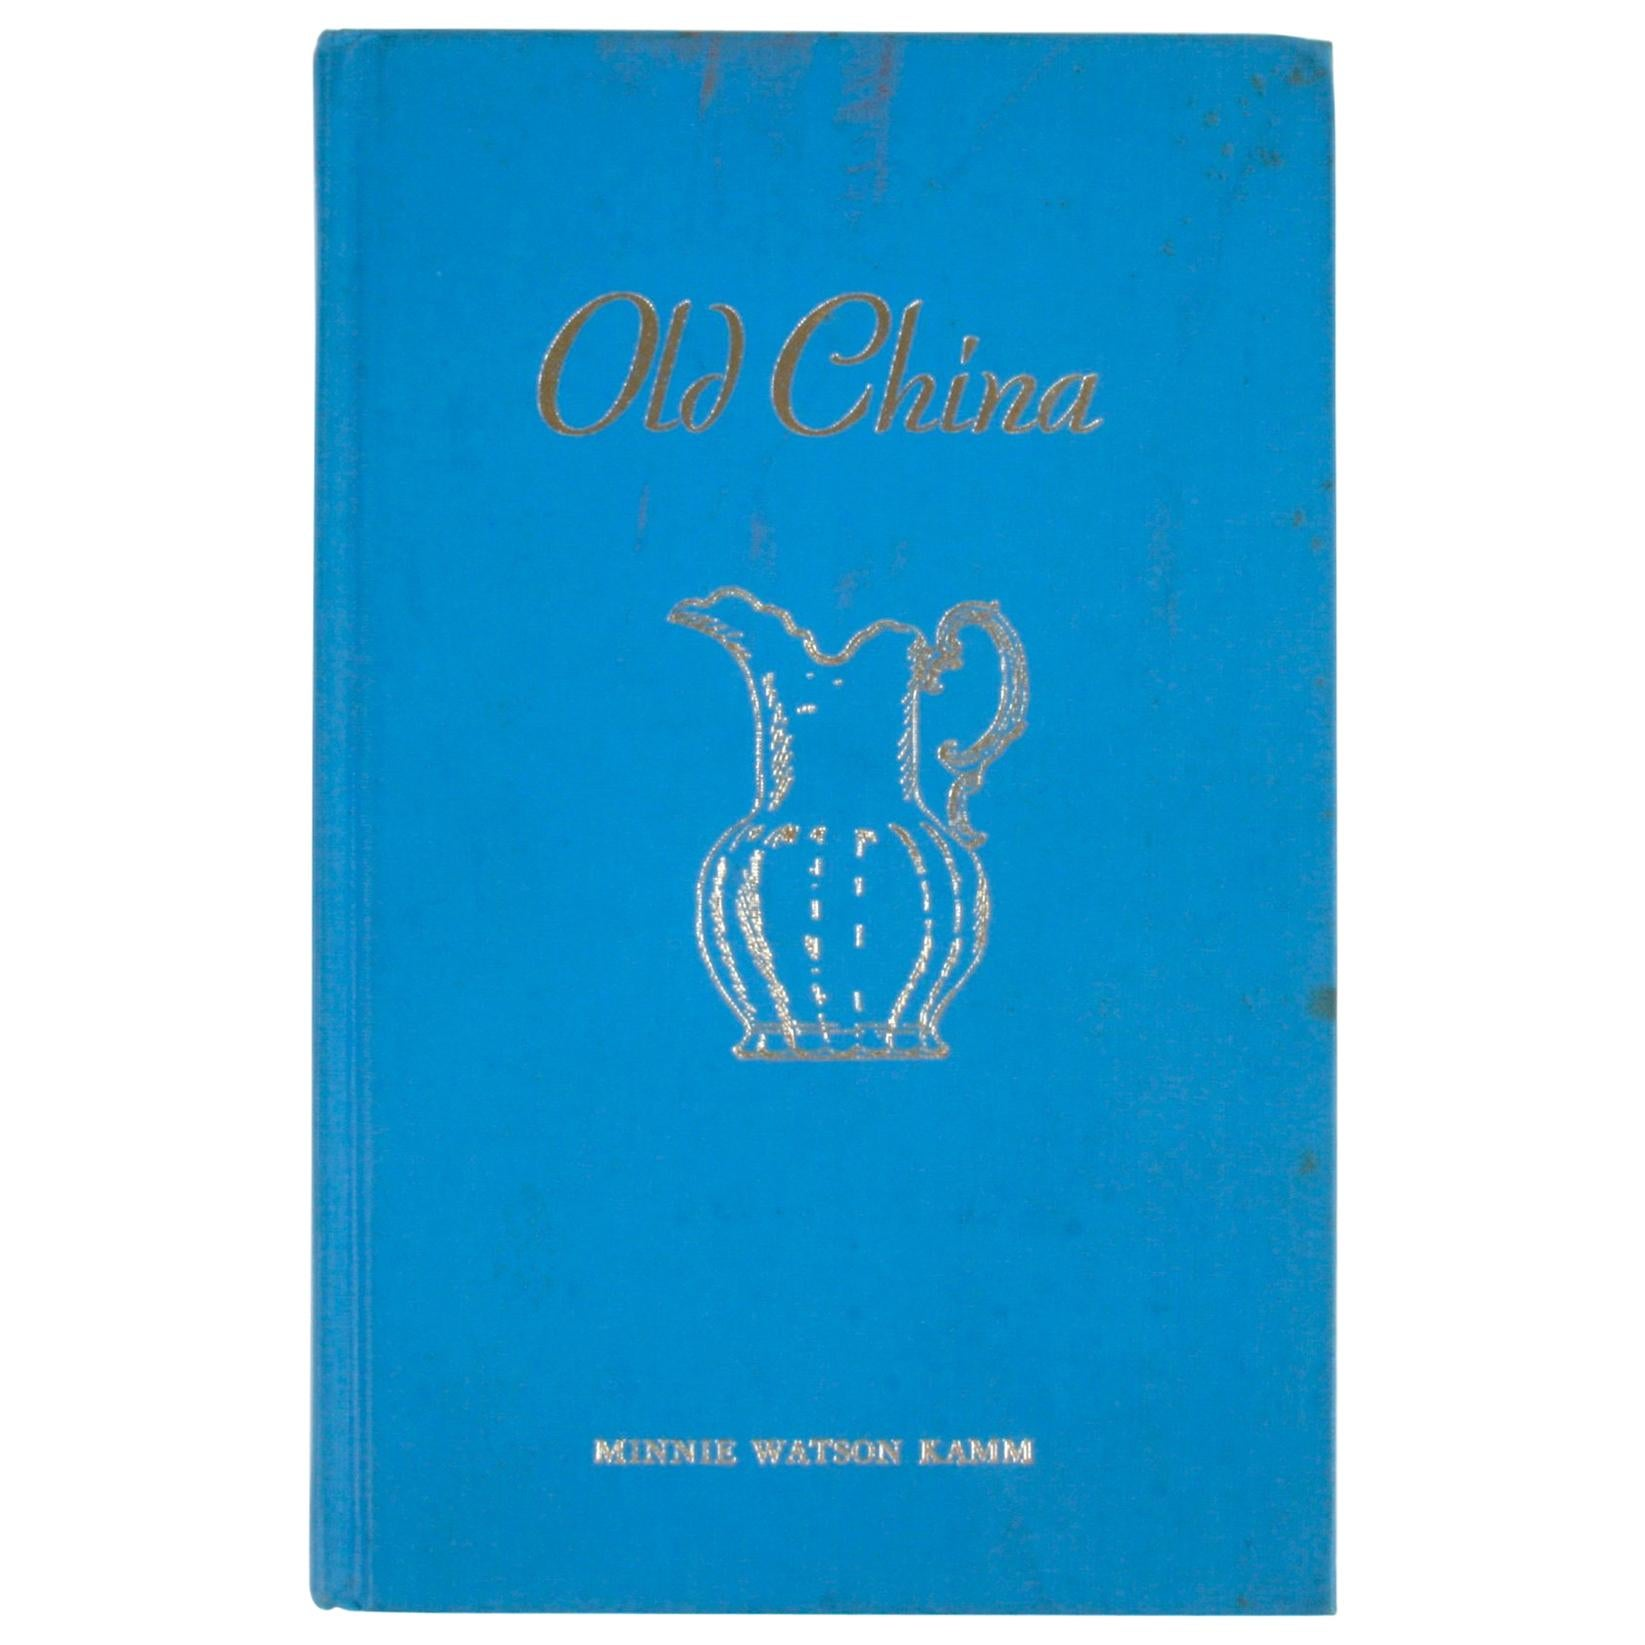 Old China by Minnie Watson Kamm, First Edition